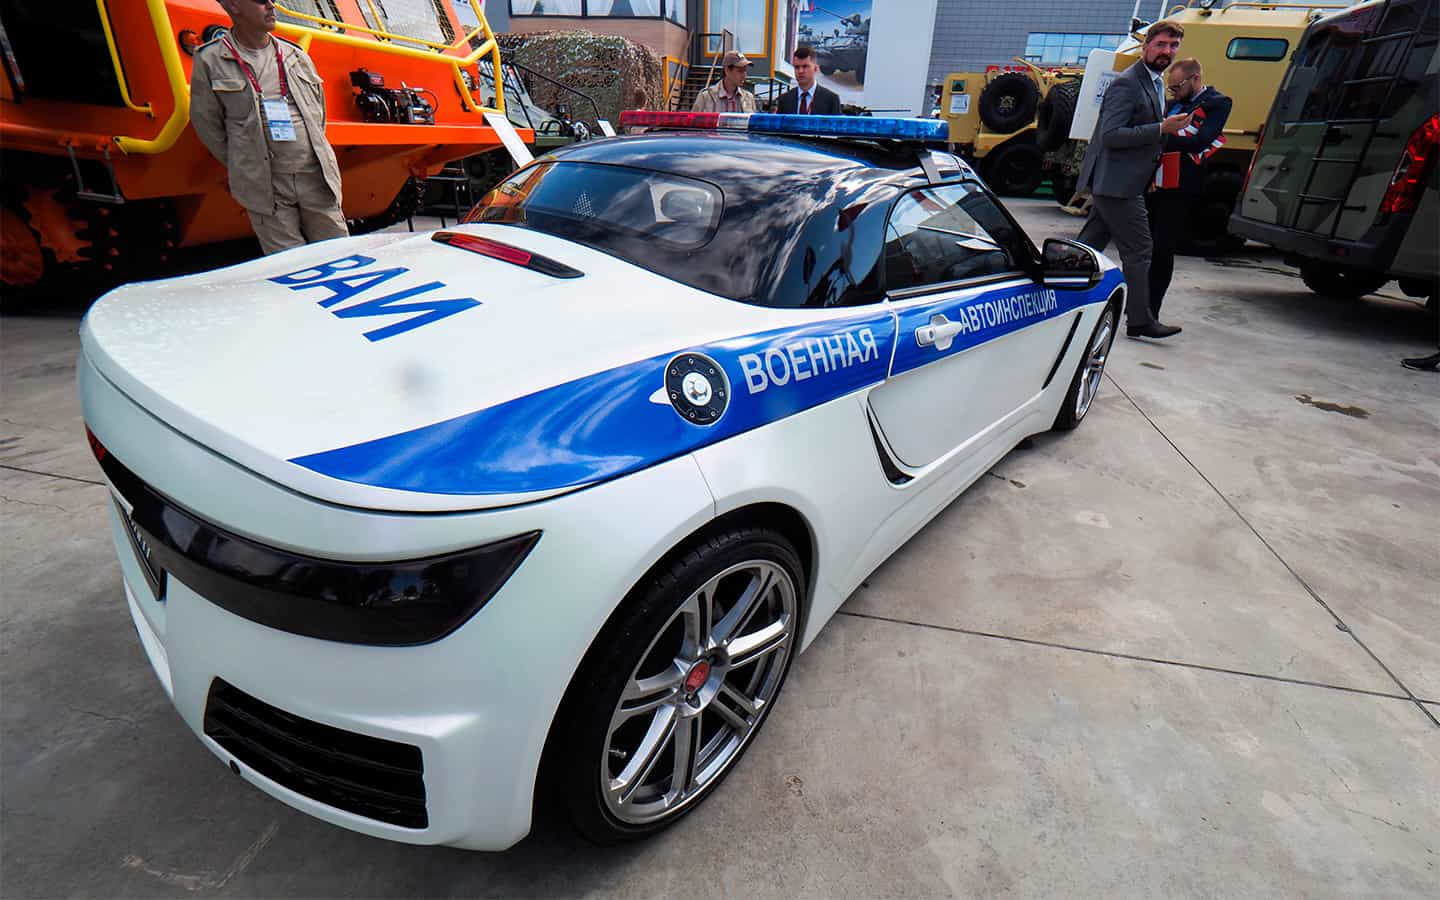 A high-speed roadster for the police has been created in Russia. Photo